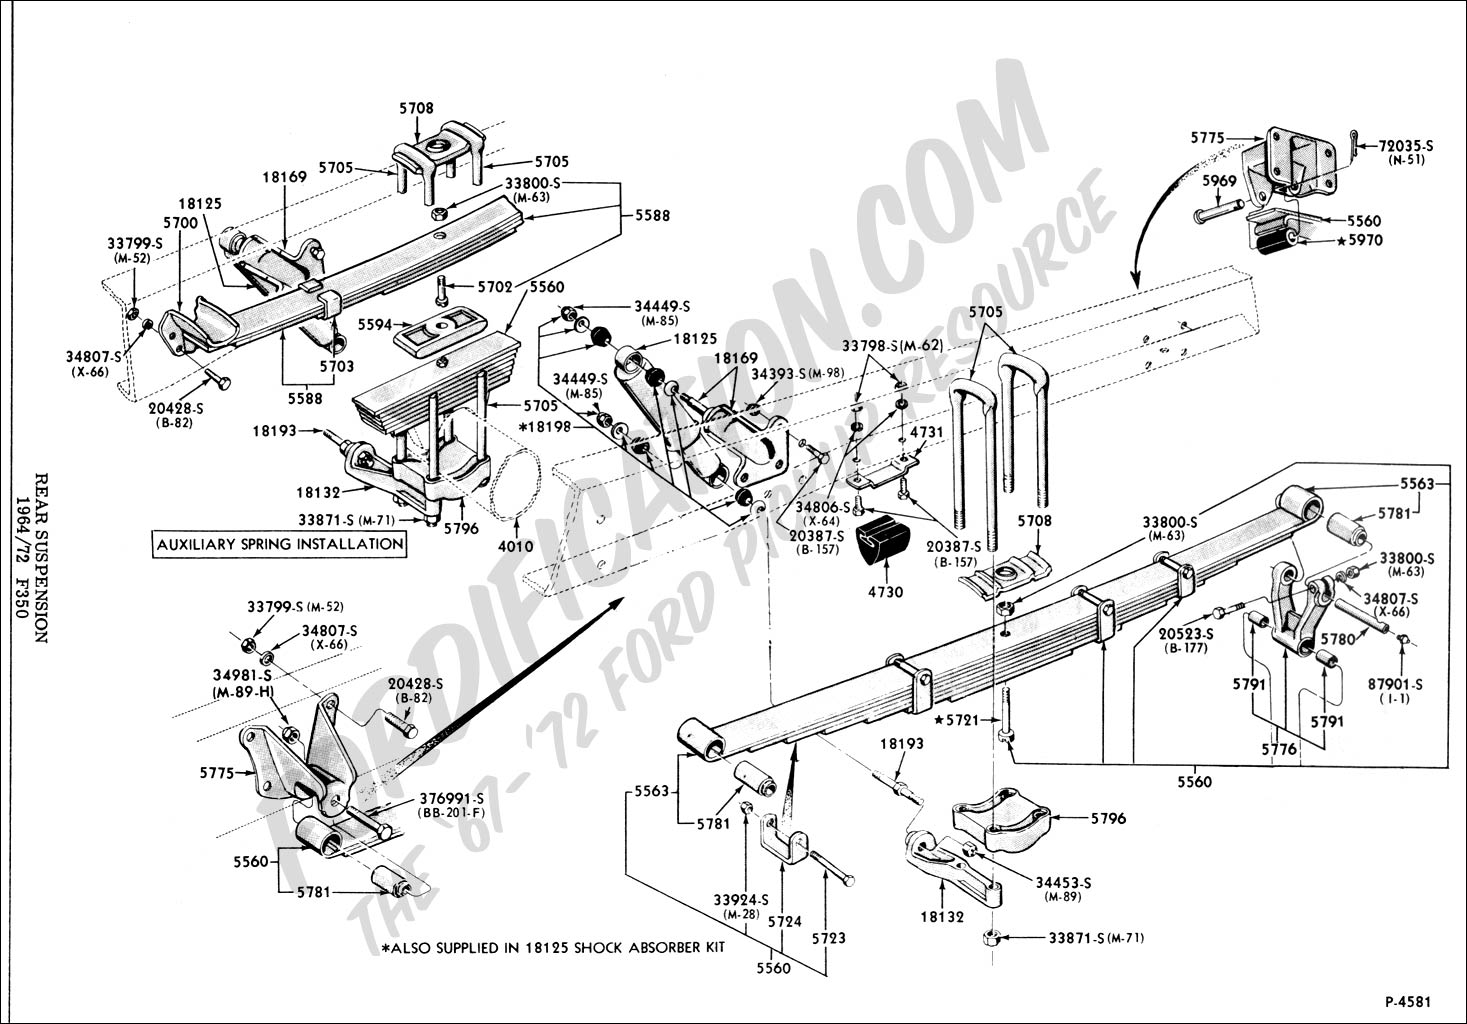 Susp Rearf on 1965 Mustang Power Steering Diagram